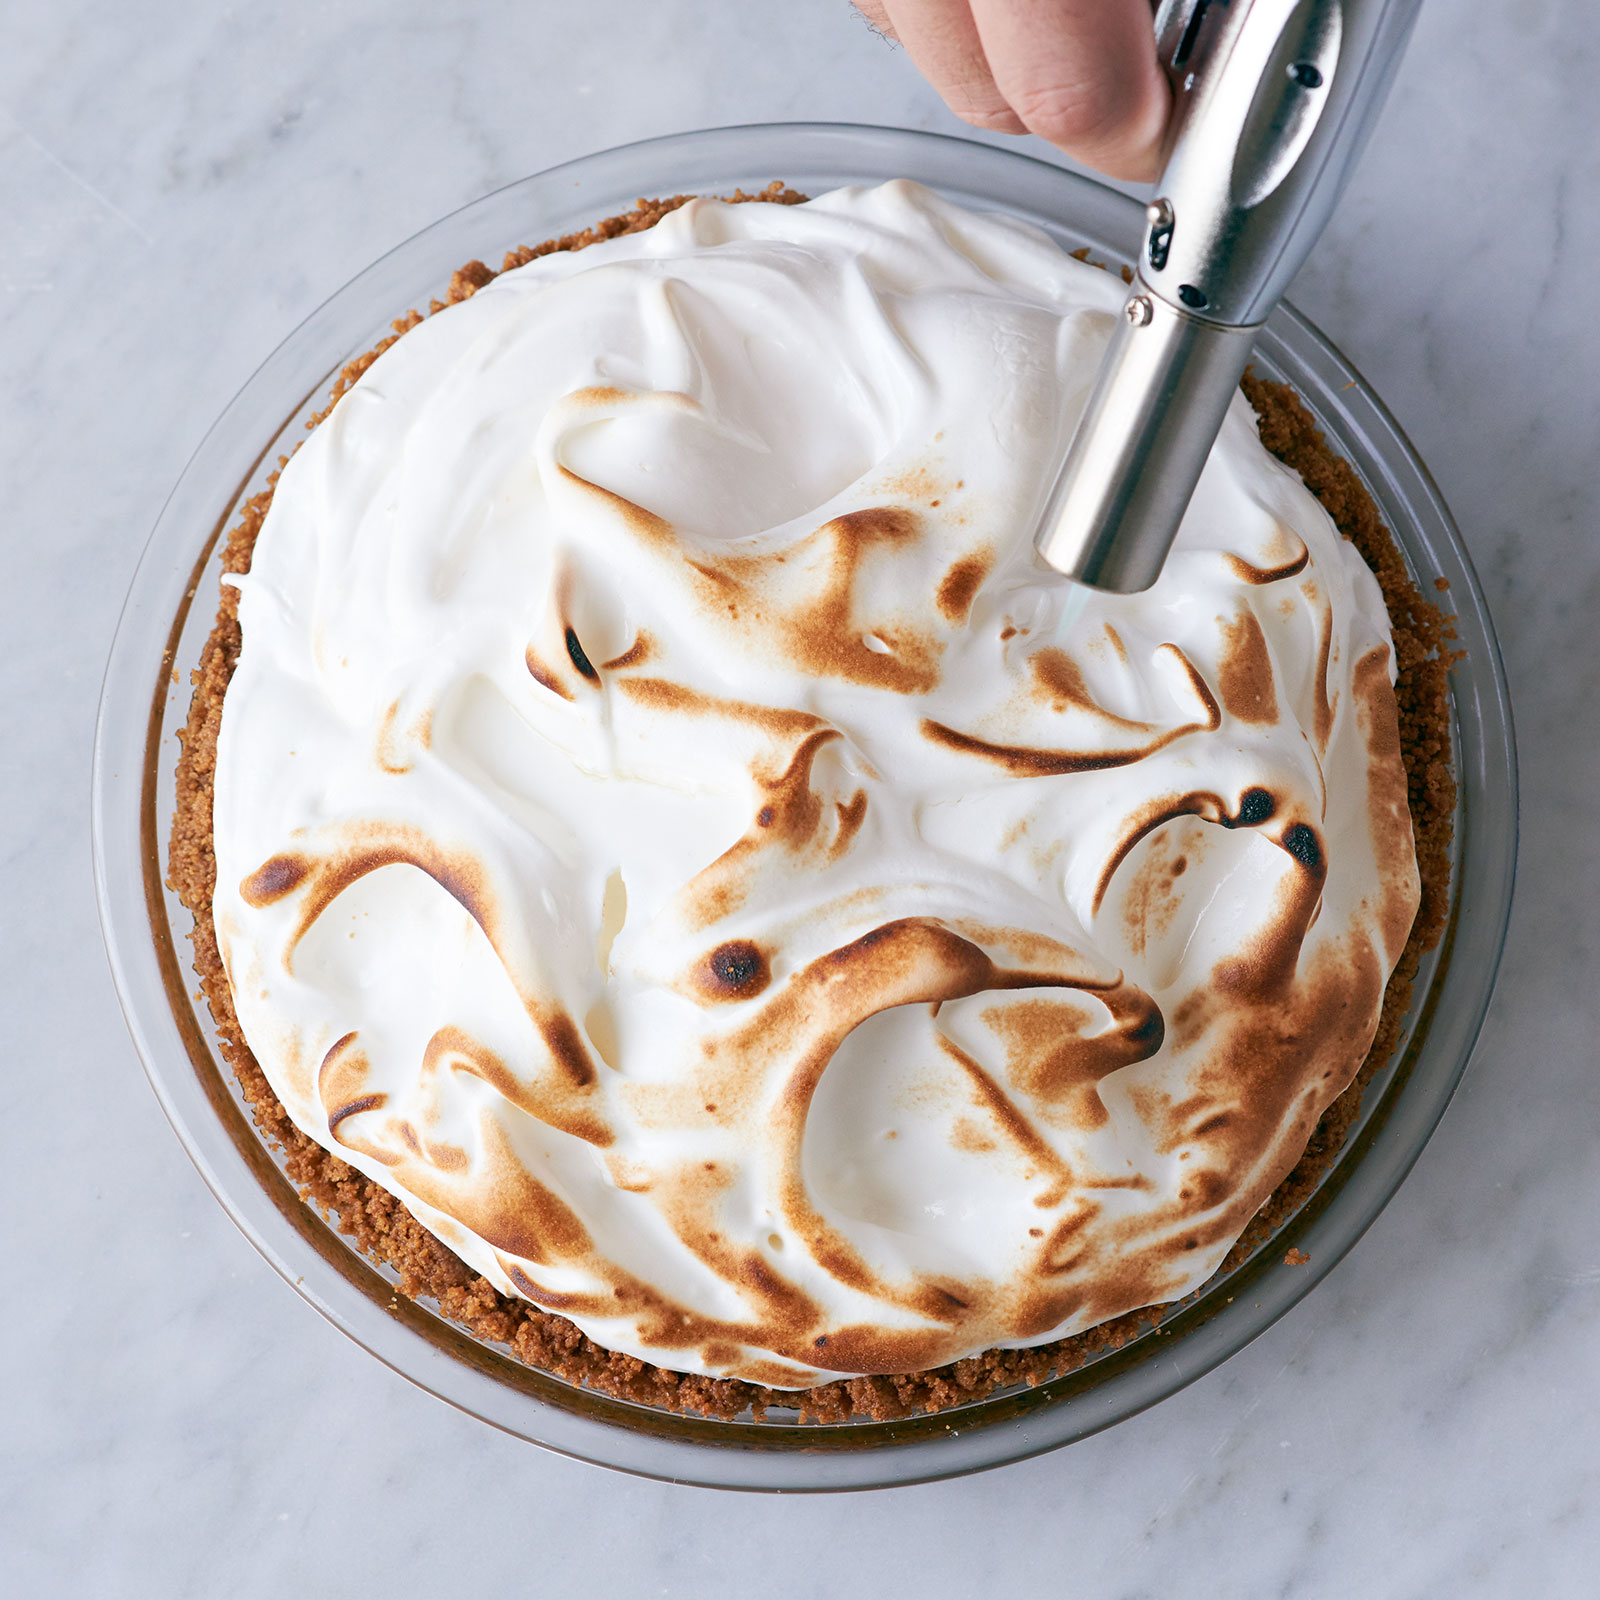 Browning the meringue with a blowtorch